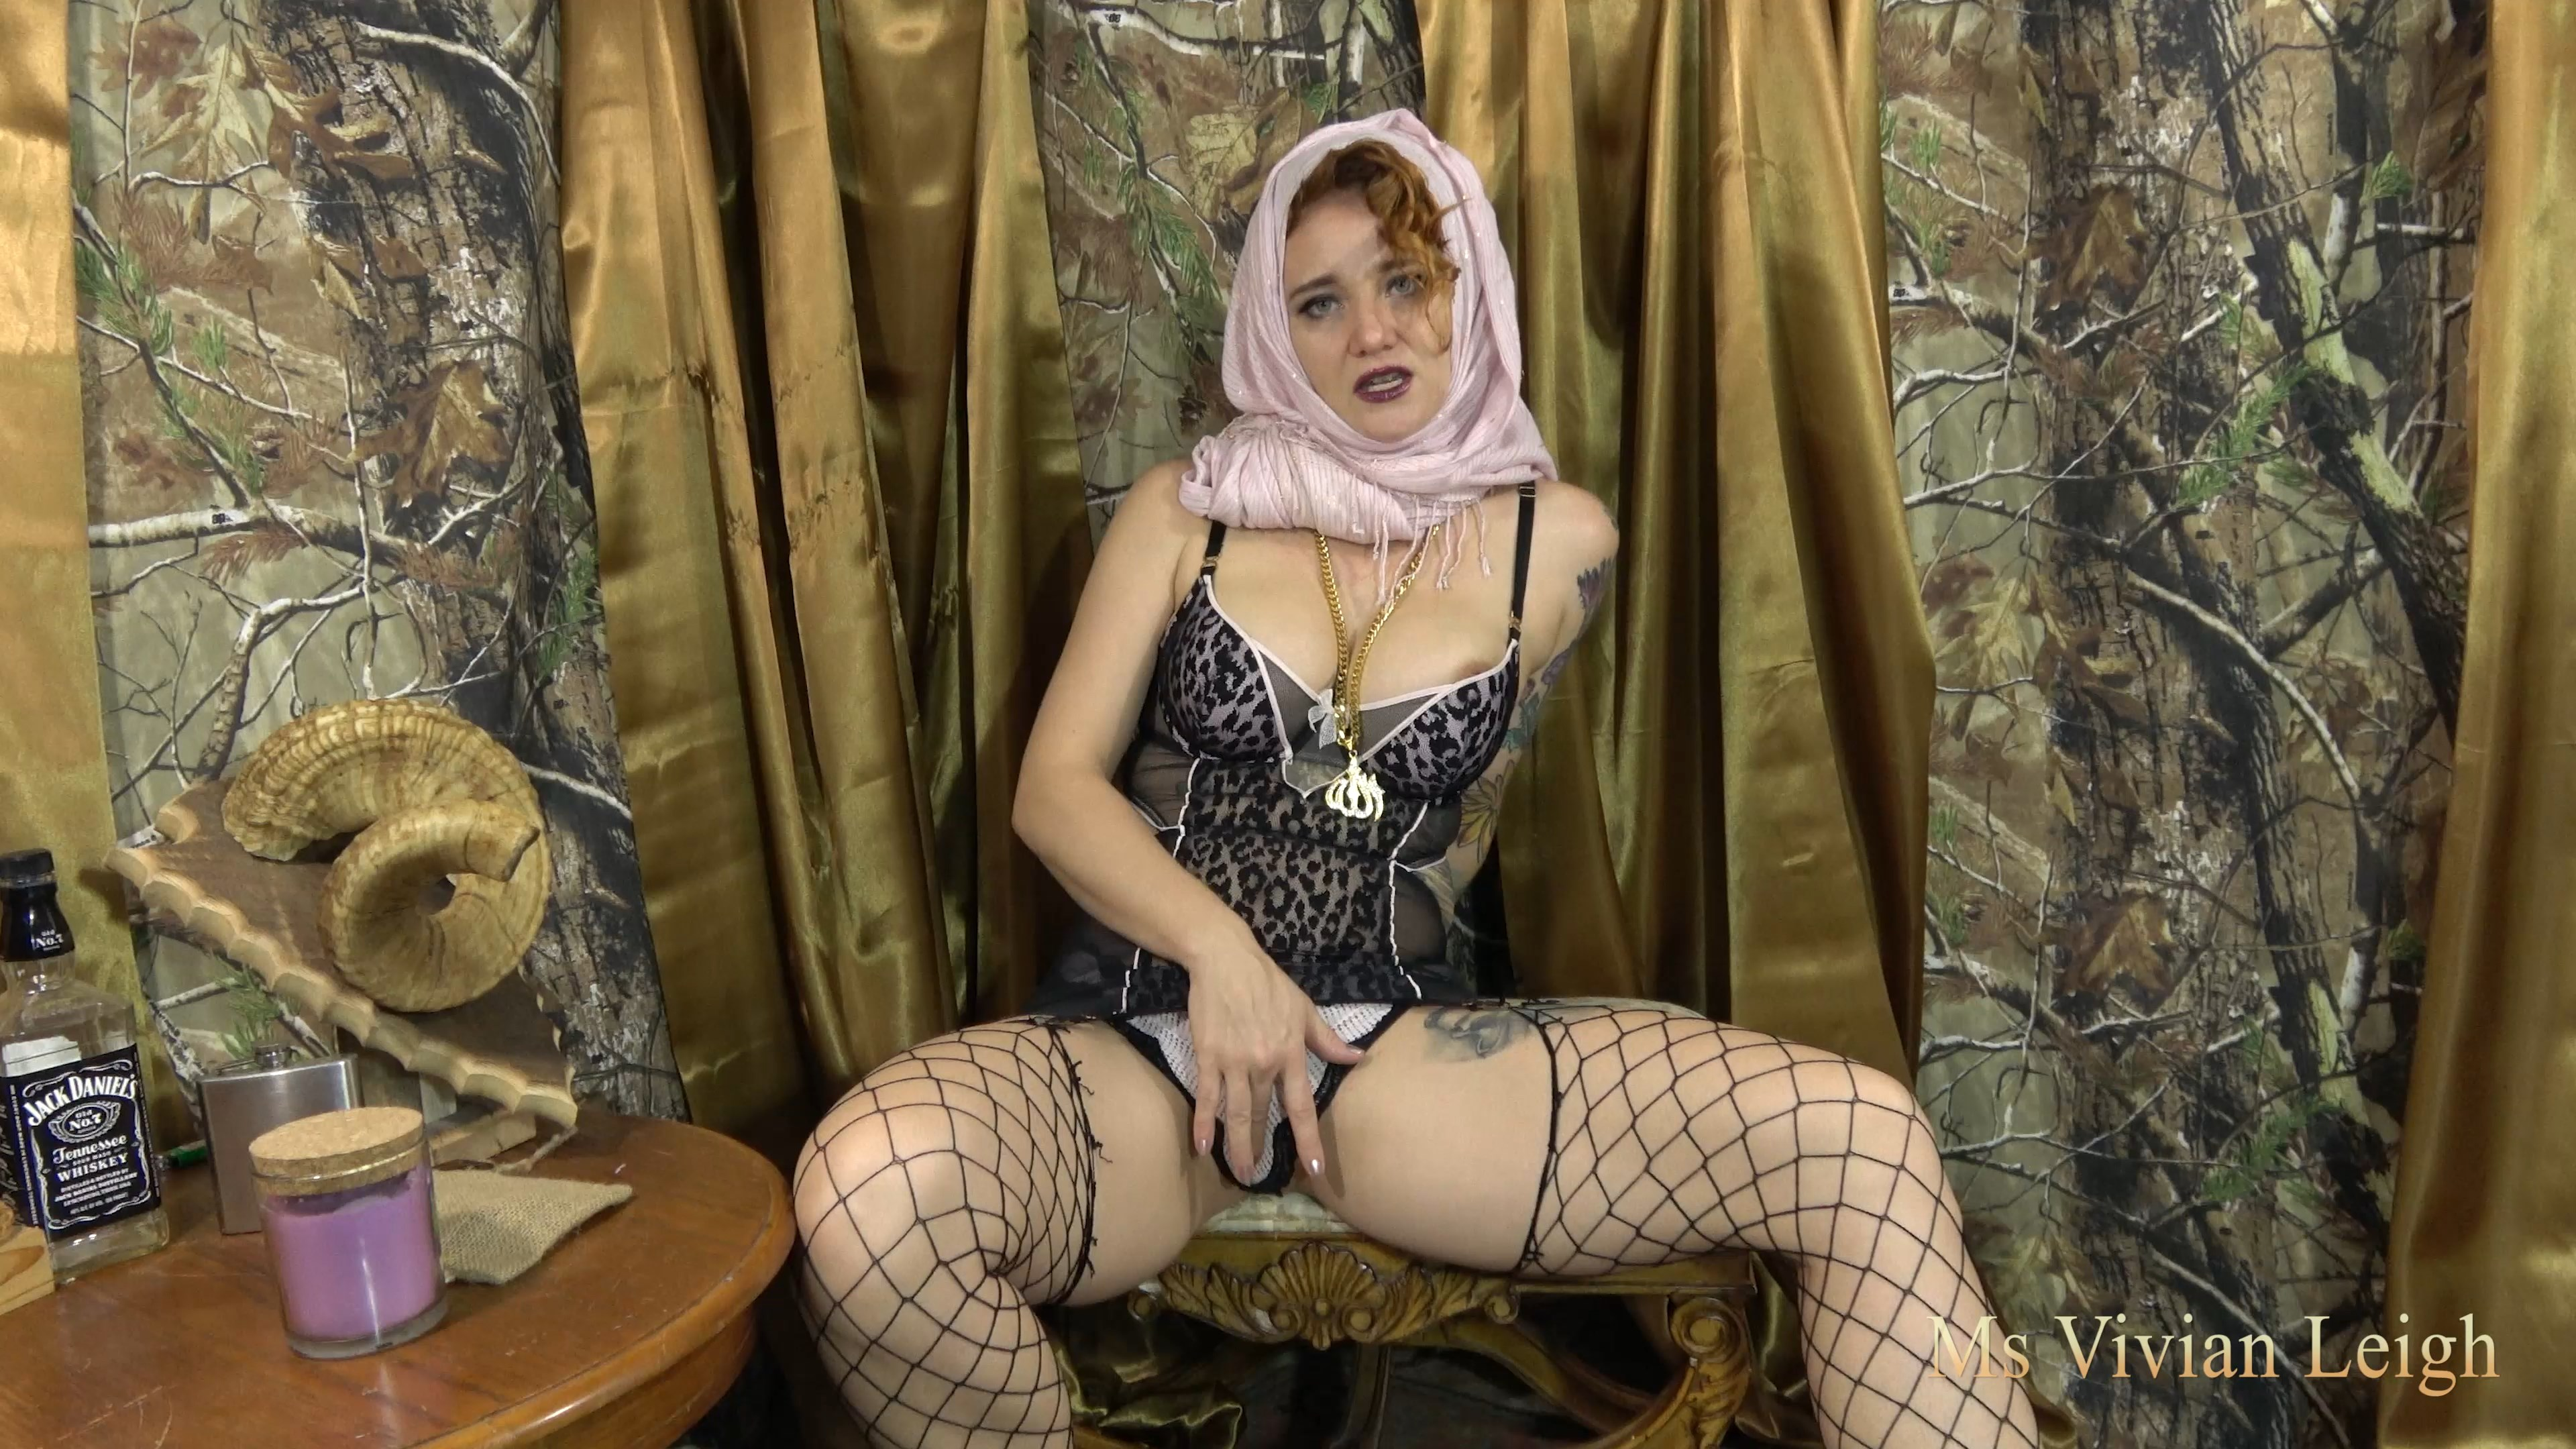 Ms Vivian Leigh - HIjabi Stepmom wants a sissy 4K